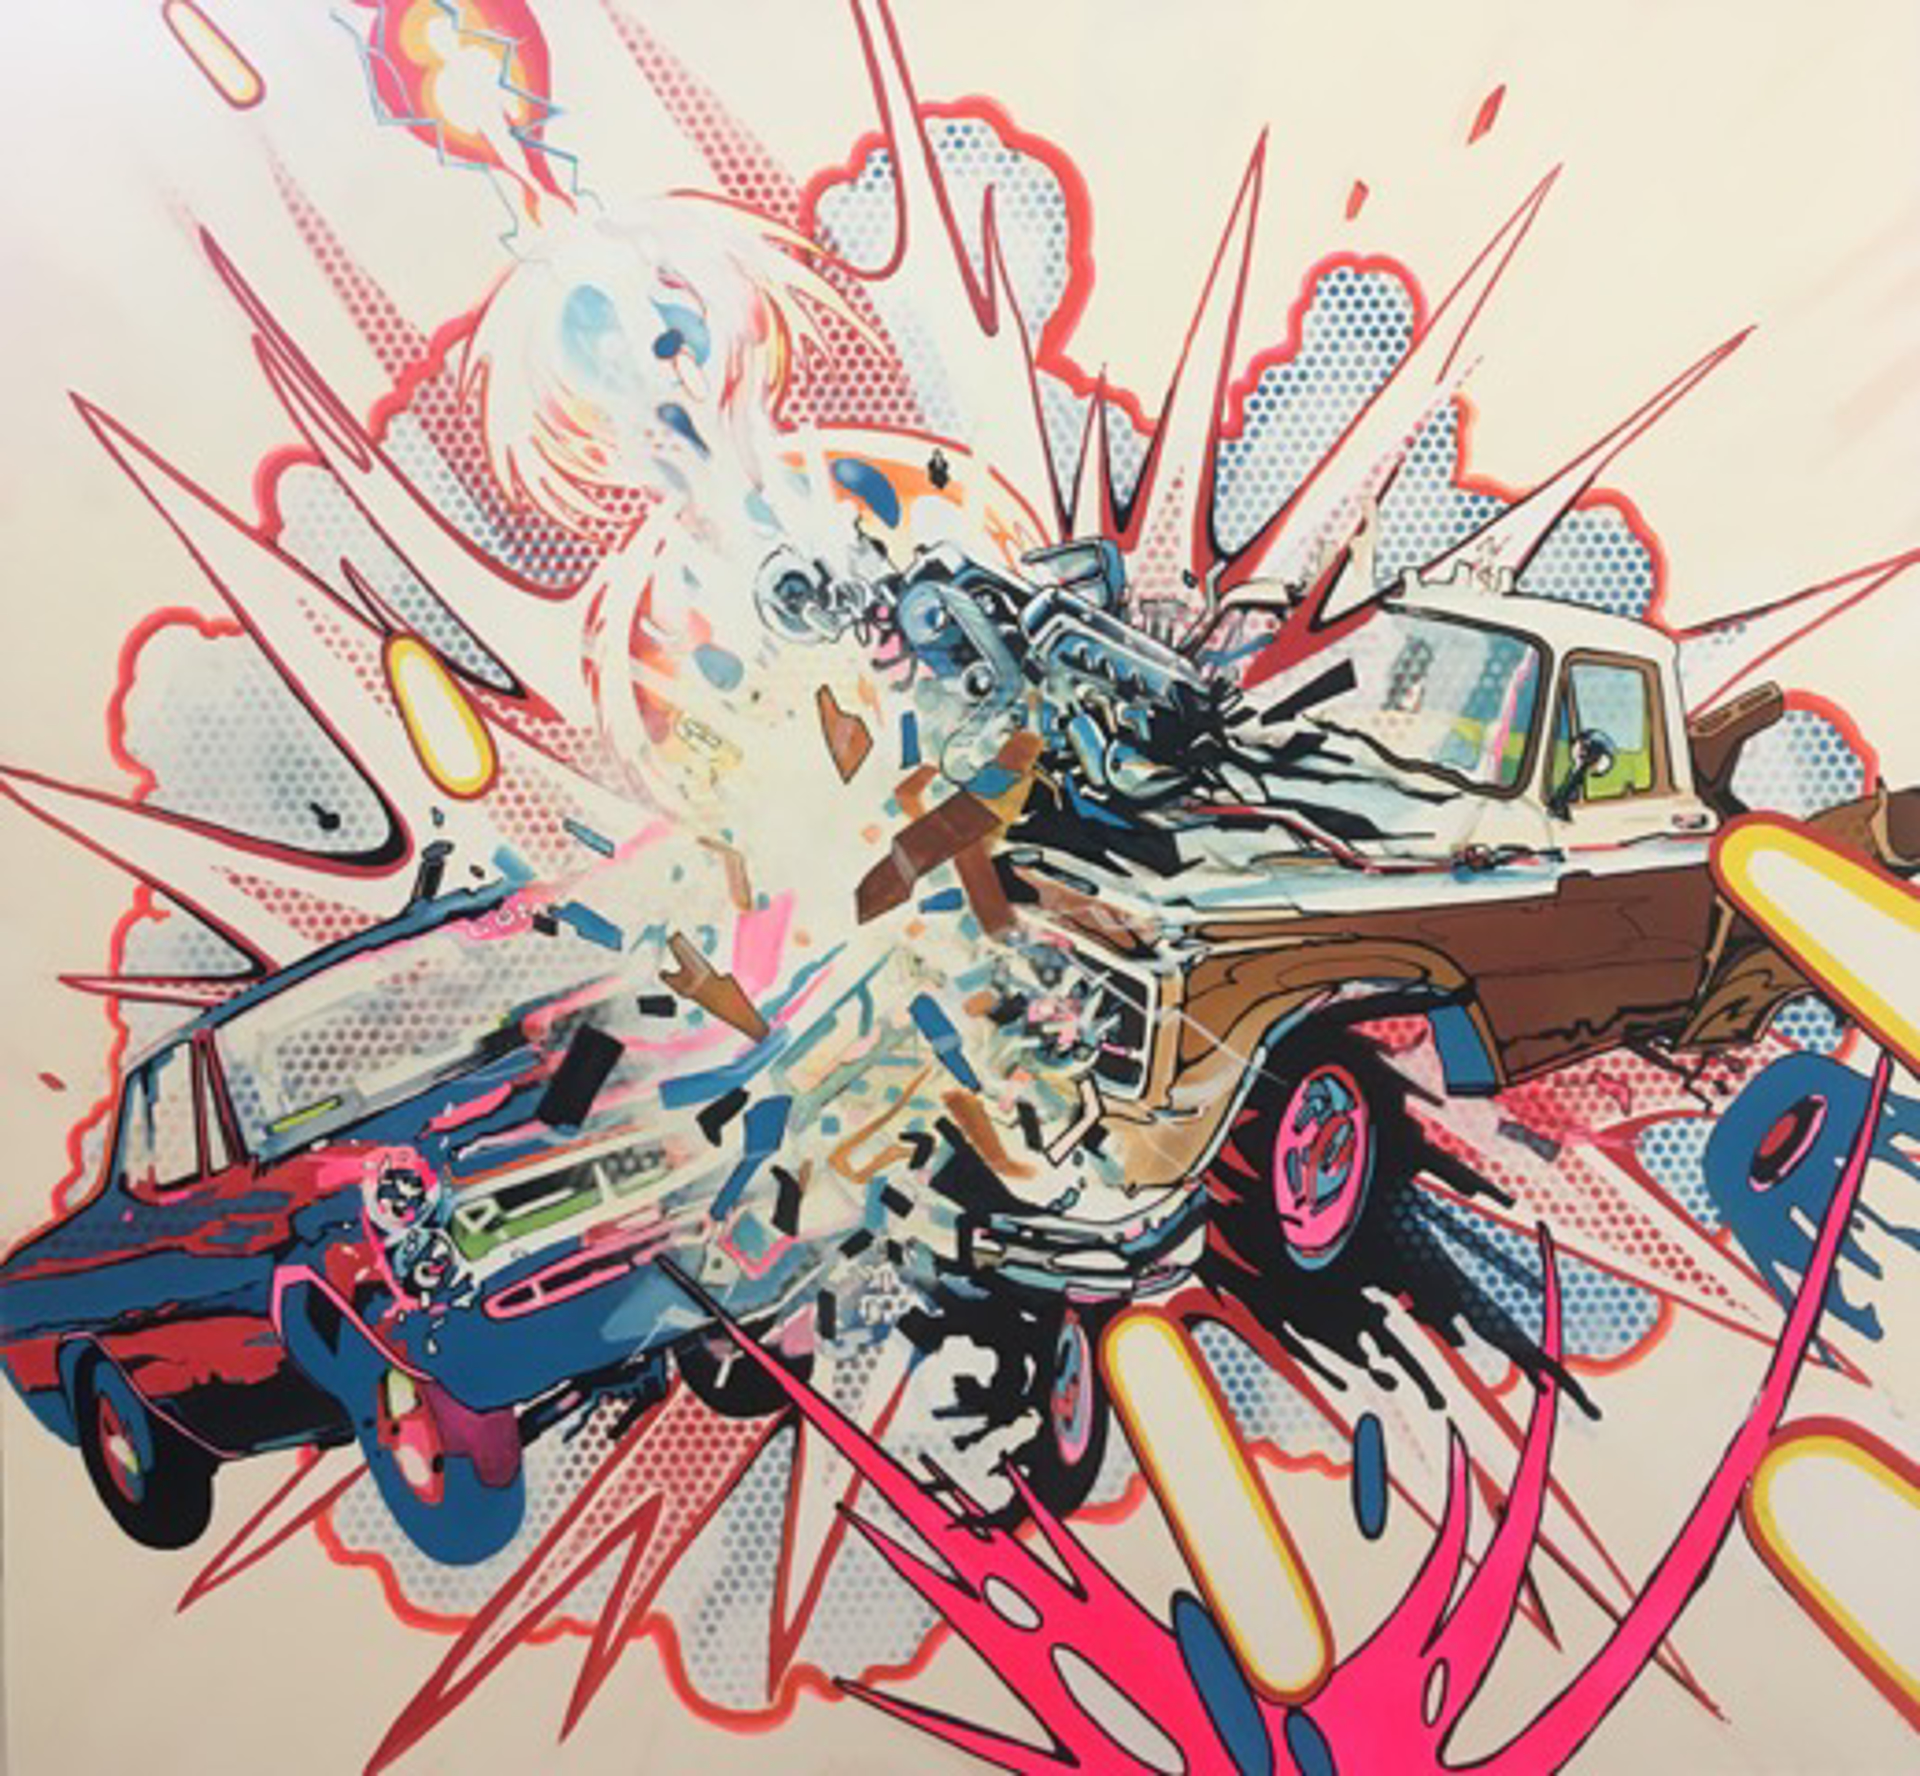 Car and Truck Crashing with Random Cosmic Laser Beam by Joe Currie